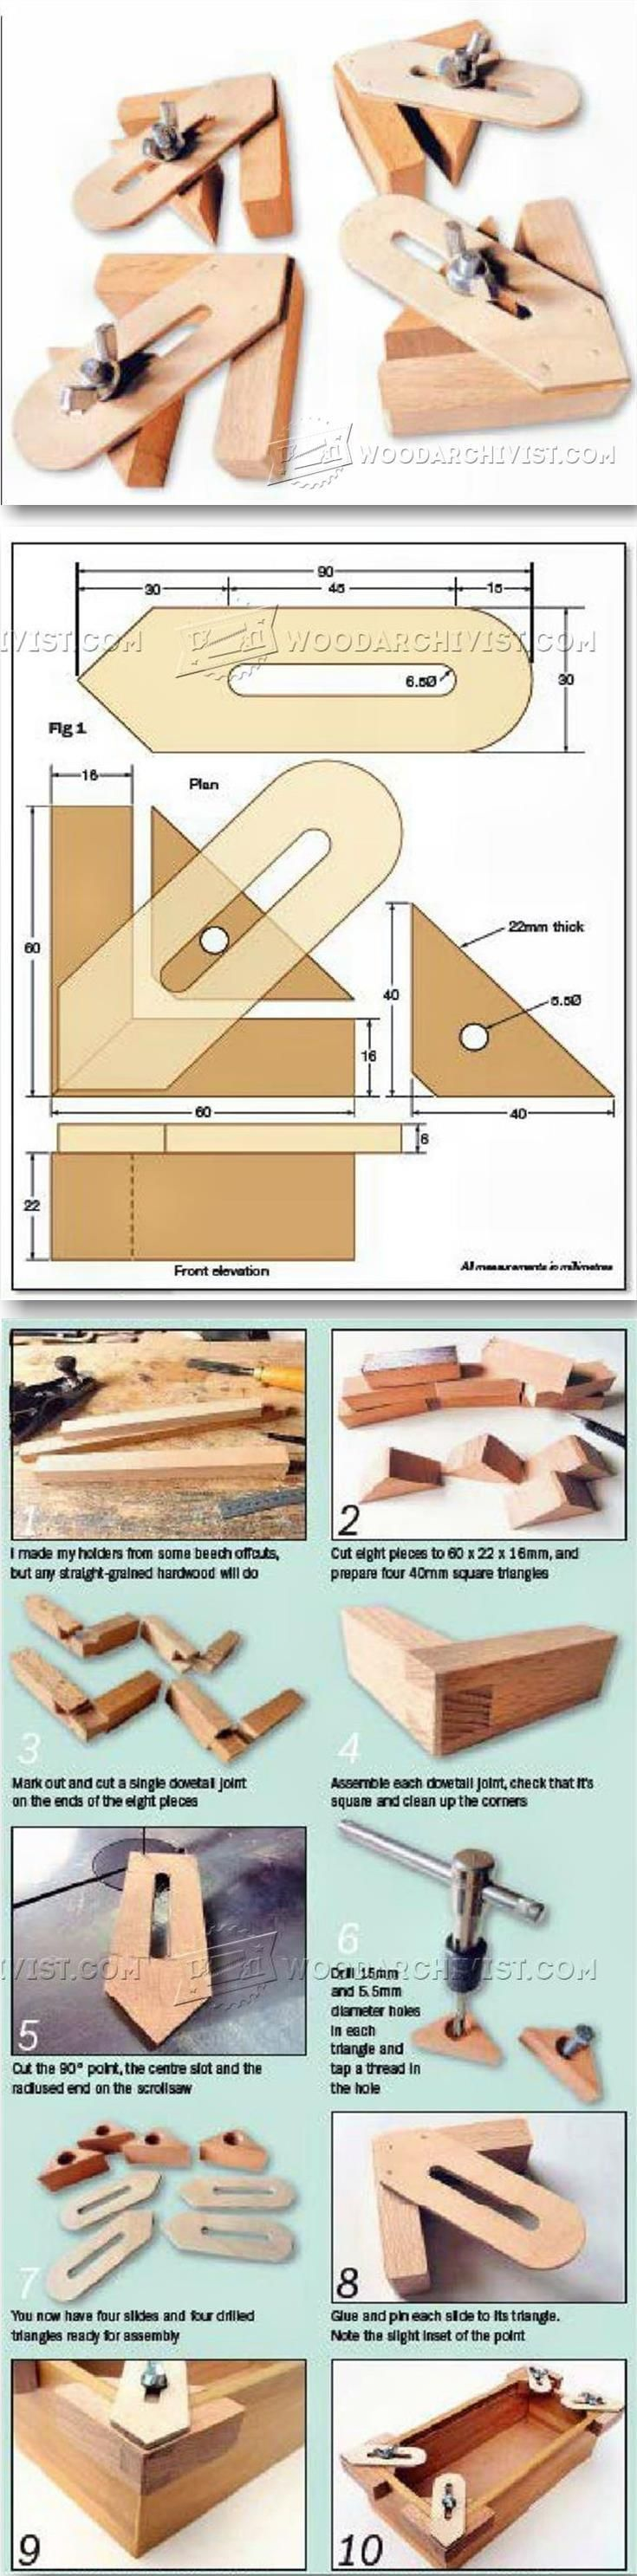 DIY Corner Holder - Furniture Assembly Tips and Techniques | http://WoodArchivist.com